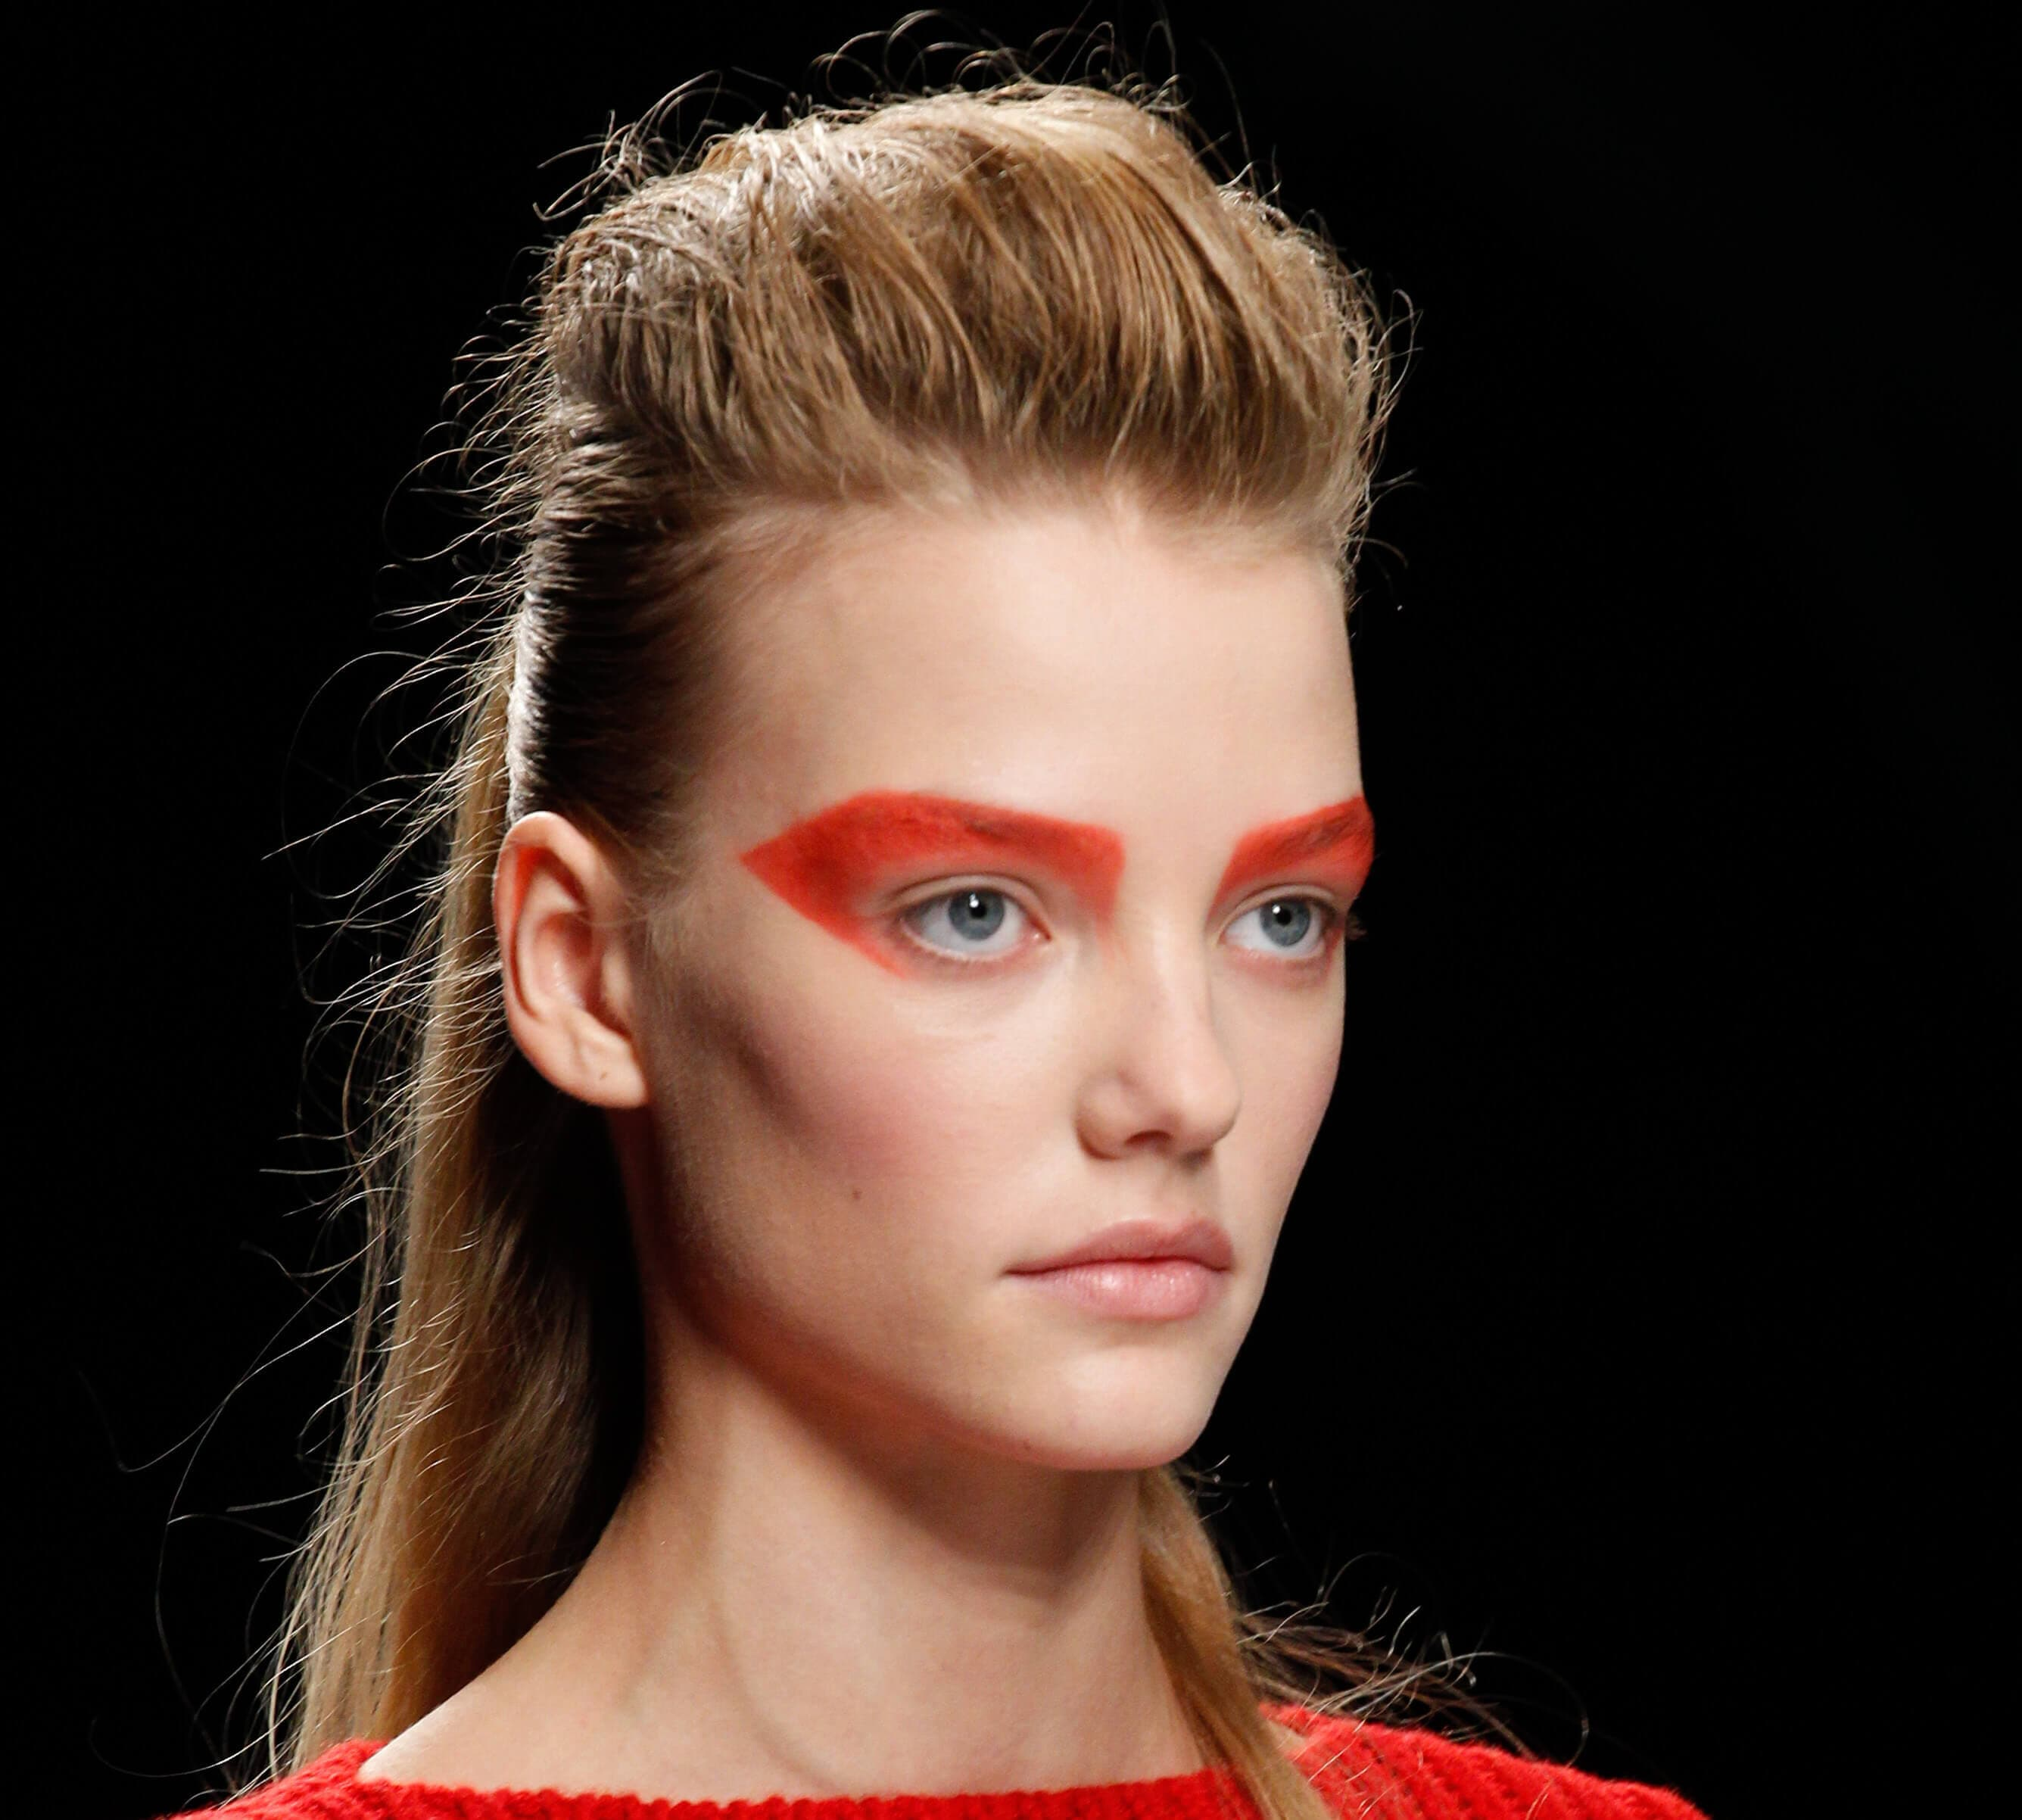 Medium length hairstyles for fine hair: Woman with blonde straight hair styled in a ponytail with a retro quiff with bold red eyeshadow on runway.